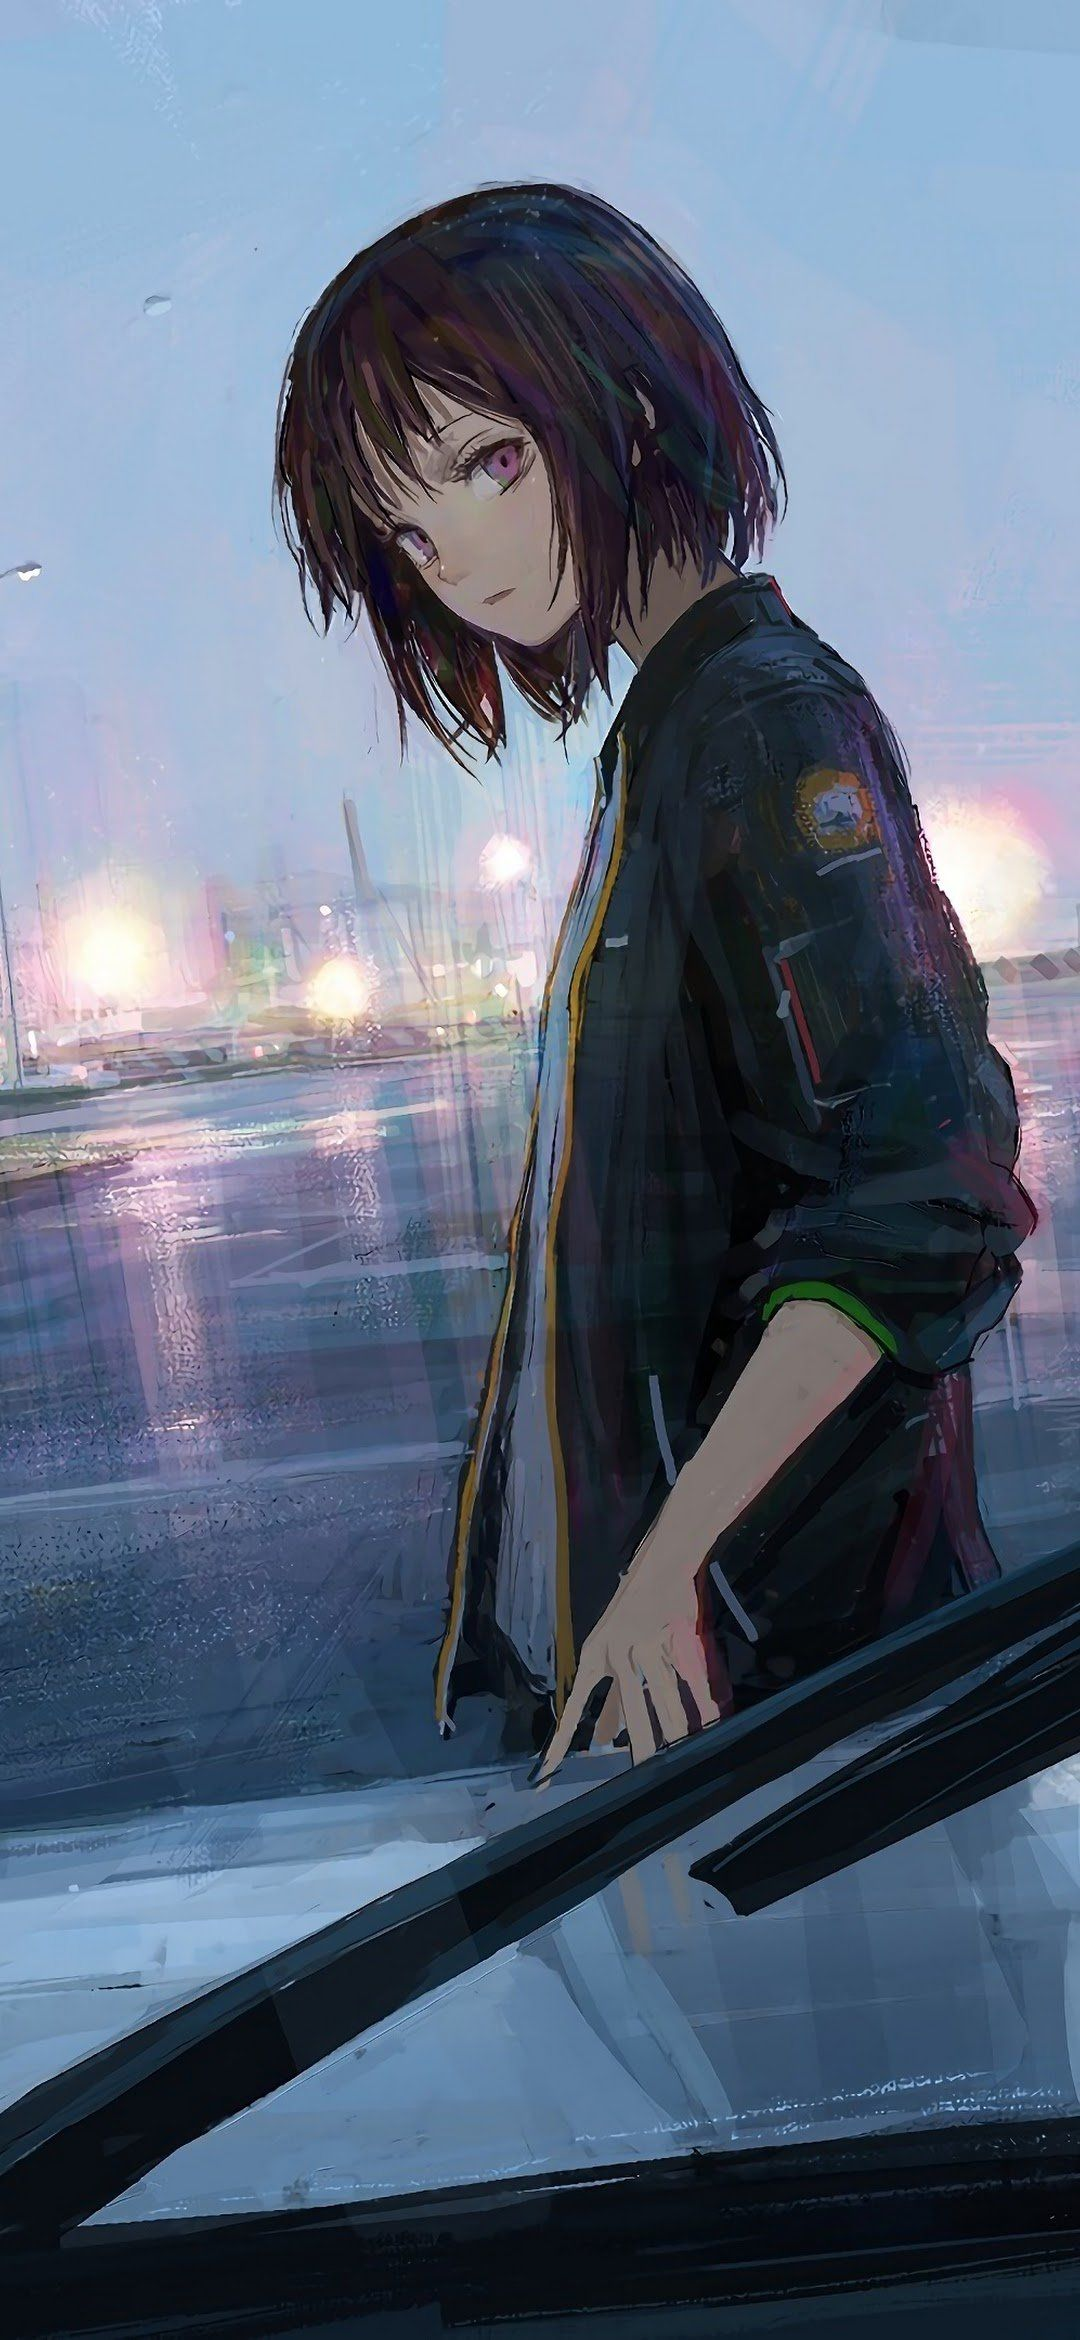 Anime Samsung Galaxy A10 Wallpapers Top Free Anime Samsung Galaxy A10 Backgrounds Wallpaperaccess